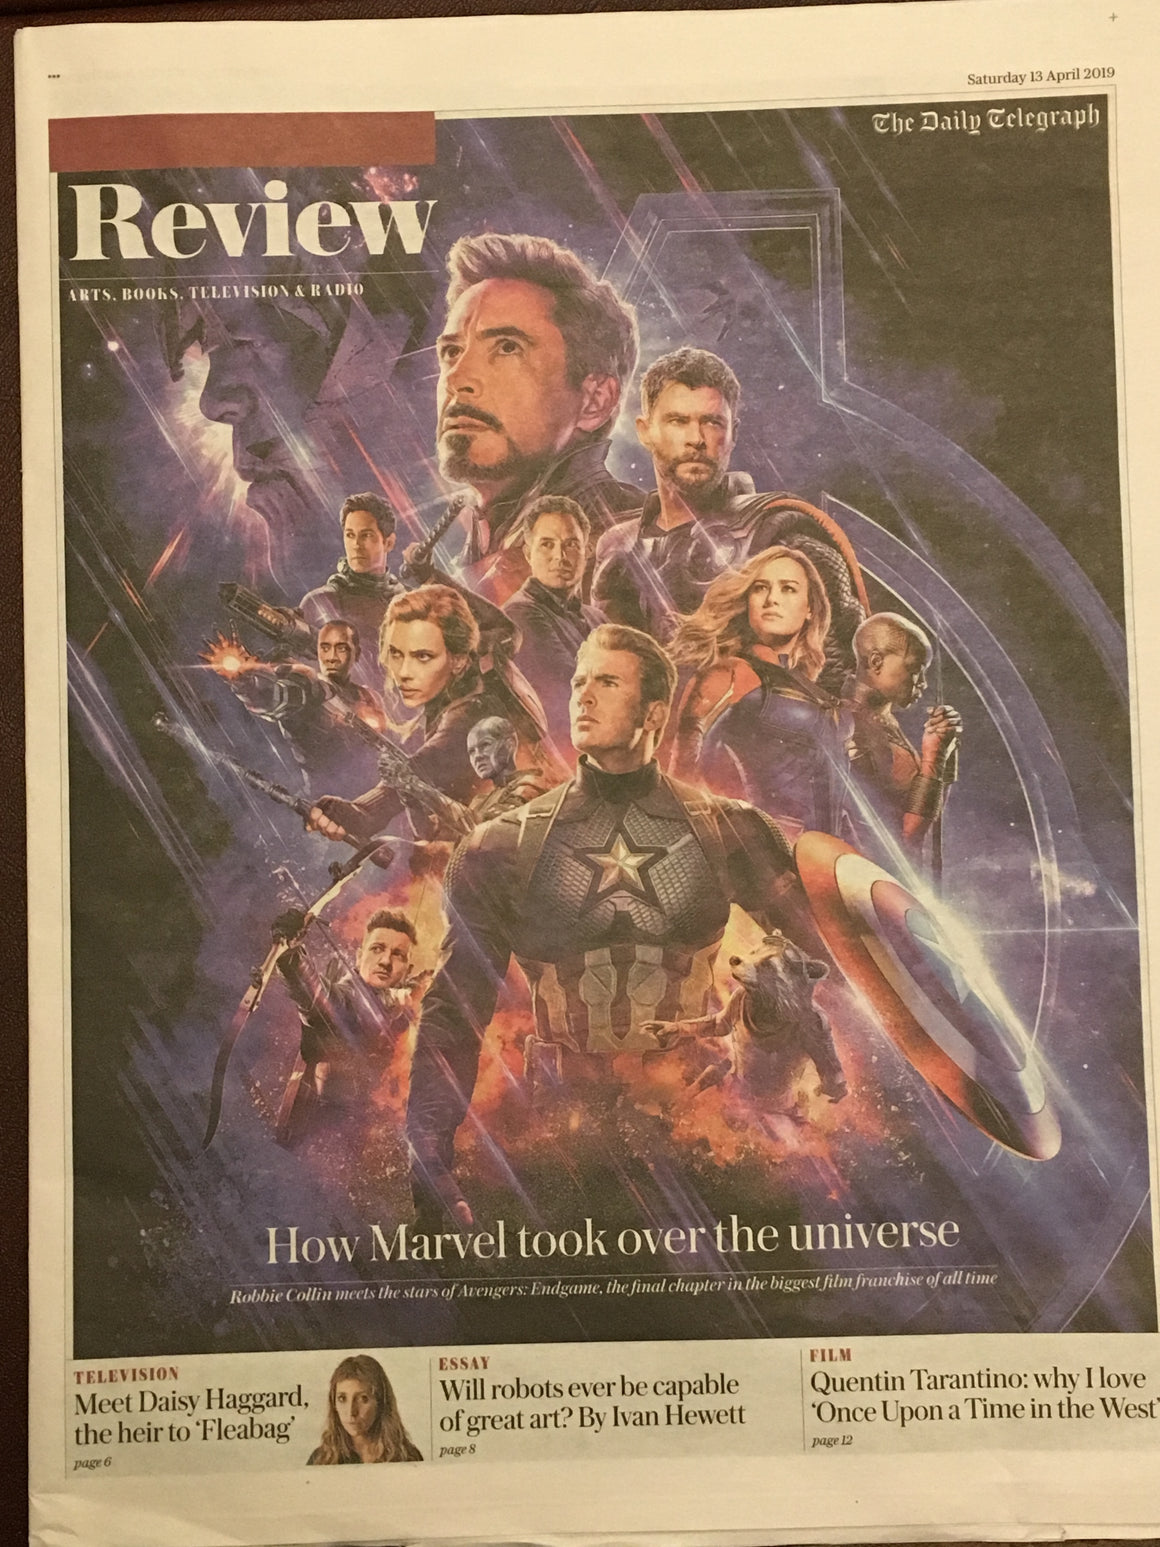 UK TELEGRAPH REVIEW April 2019: AVENGERS: ENDGAME Chris Evans Hemsworth ROBERT DOWNEY JR.